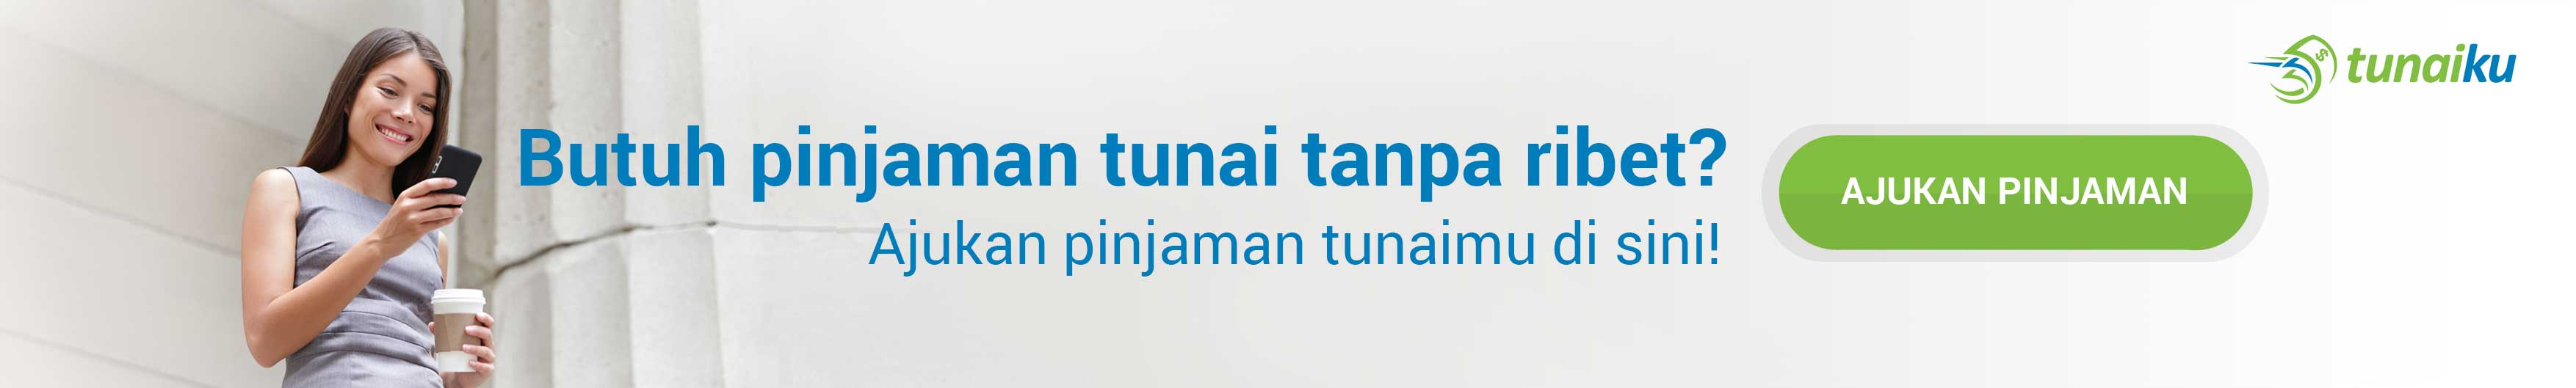 KTA, tunaiku, pinjaman tunai, pinjaman online, pinjaman mudah dan cepat, pinjaman tanpa agunan, pinjaman tanpa jaminan, amar bank indonesia, kredit mudah dan tanpa agunan, kredit tanpa jaminan, working parents, tips jadi working parents